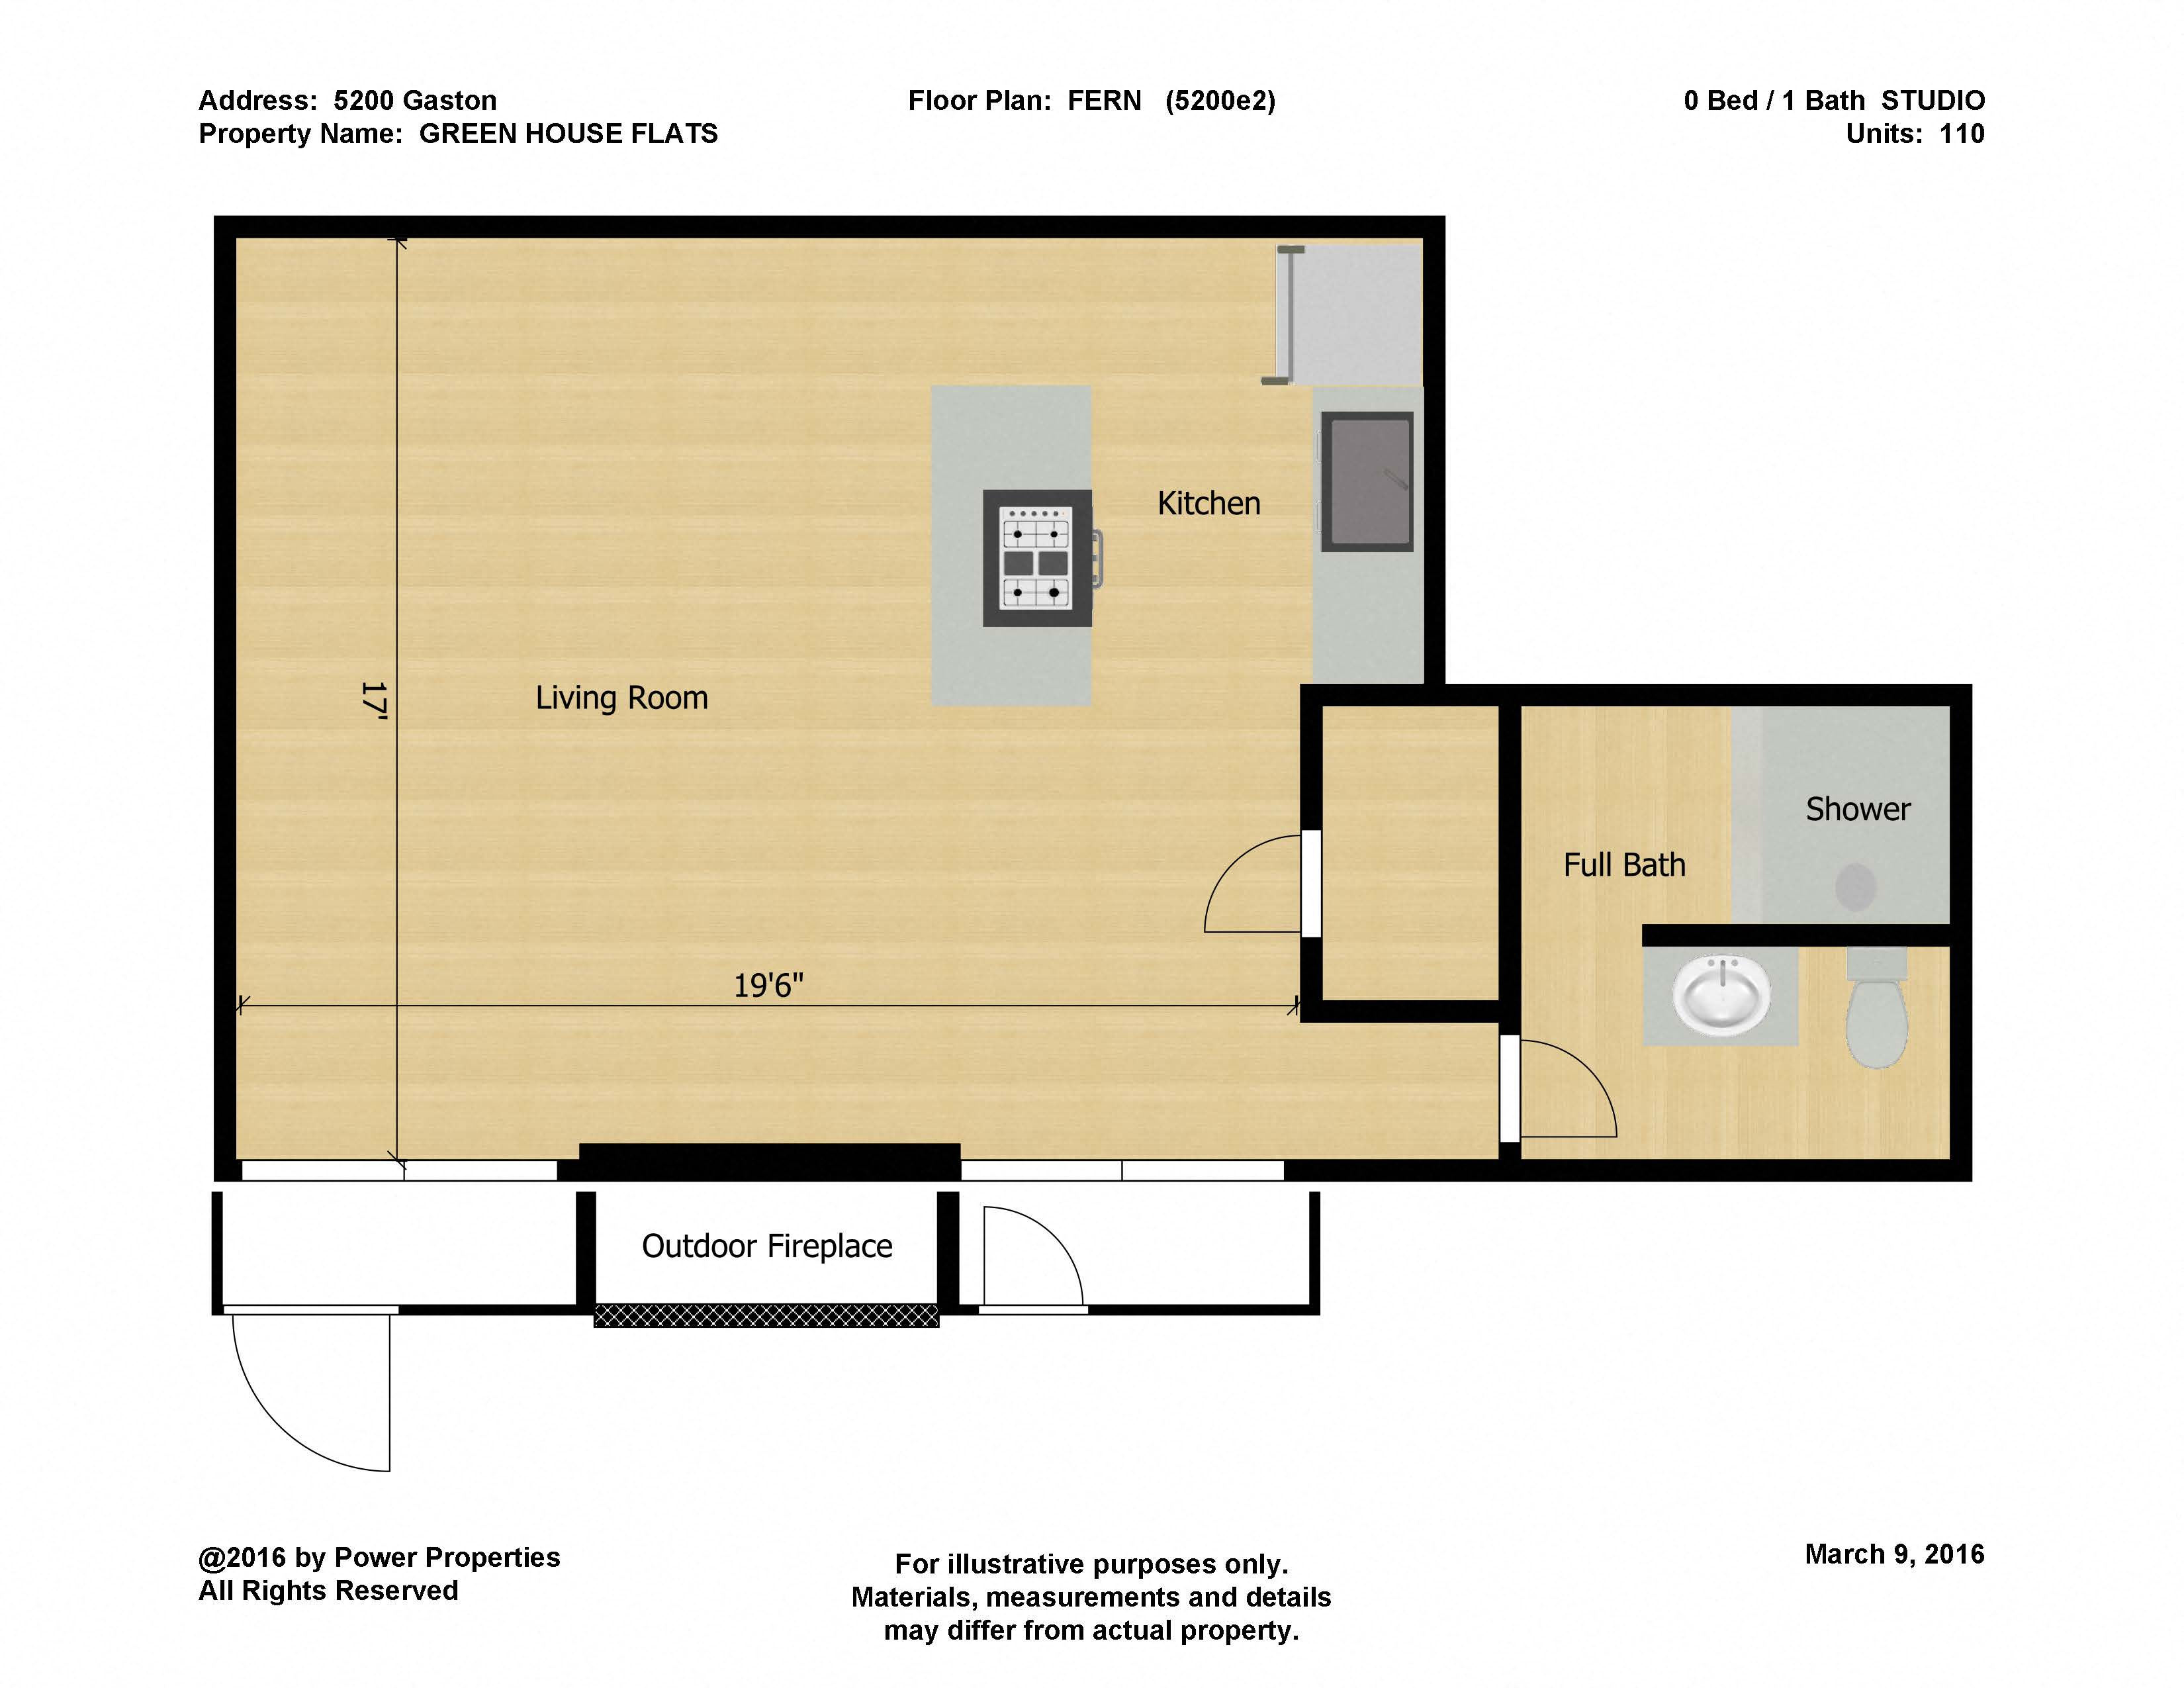 Floor Plans of GREEN HOUSE FLATS in Dallas, TX on green architecture house plans, lake view floor plans, green ranch house plans, adult community floor plans, green house blog, green house foundations, green garage plans, green house brochures, community pool floor plans, green house kitchens, commercial floor plans, gardening floor plans, building floor plans, green small house plans, garden office floor plans, water floor plans, foreclosure floor plans, green house architects, home floor plans, computer room floor plans,